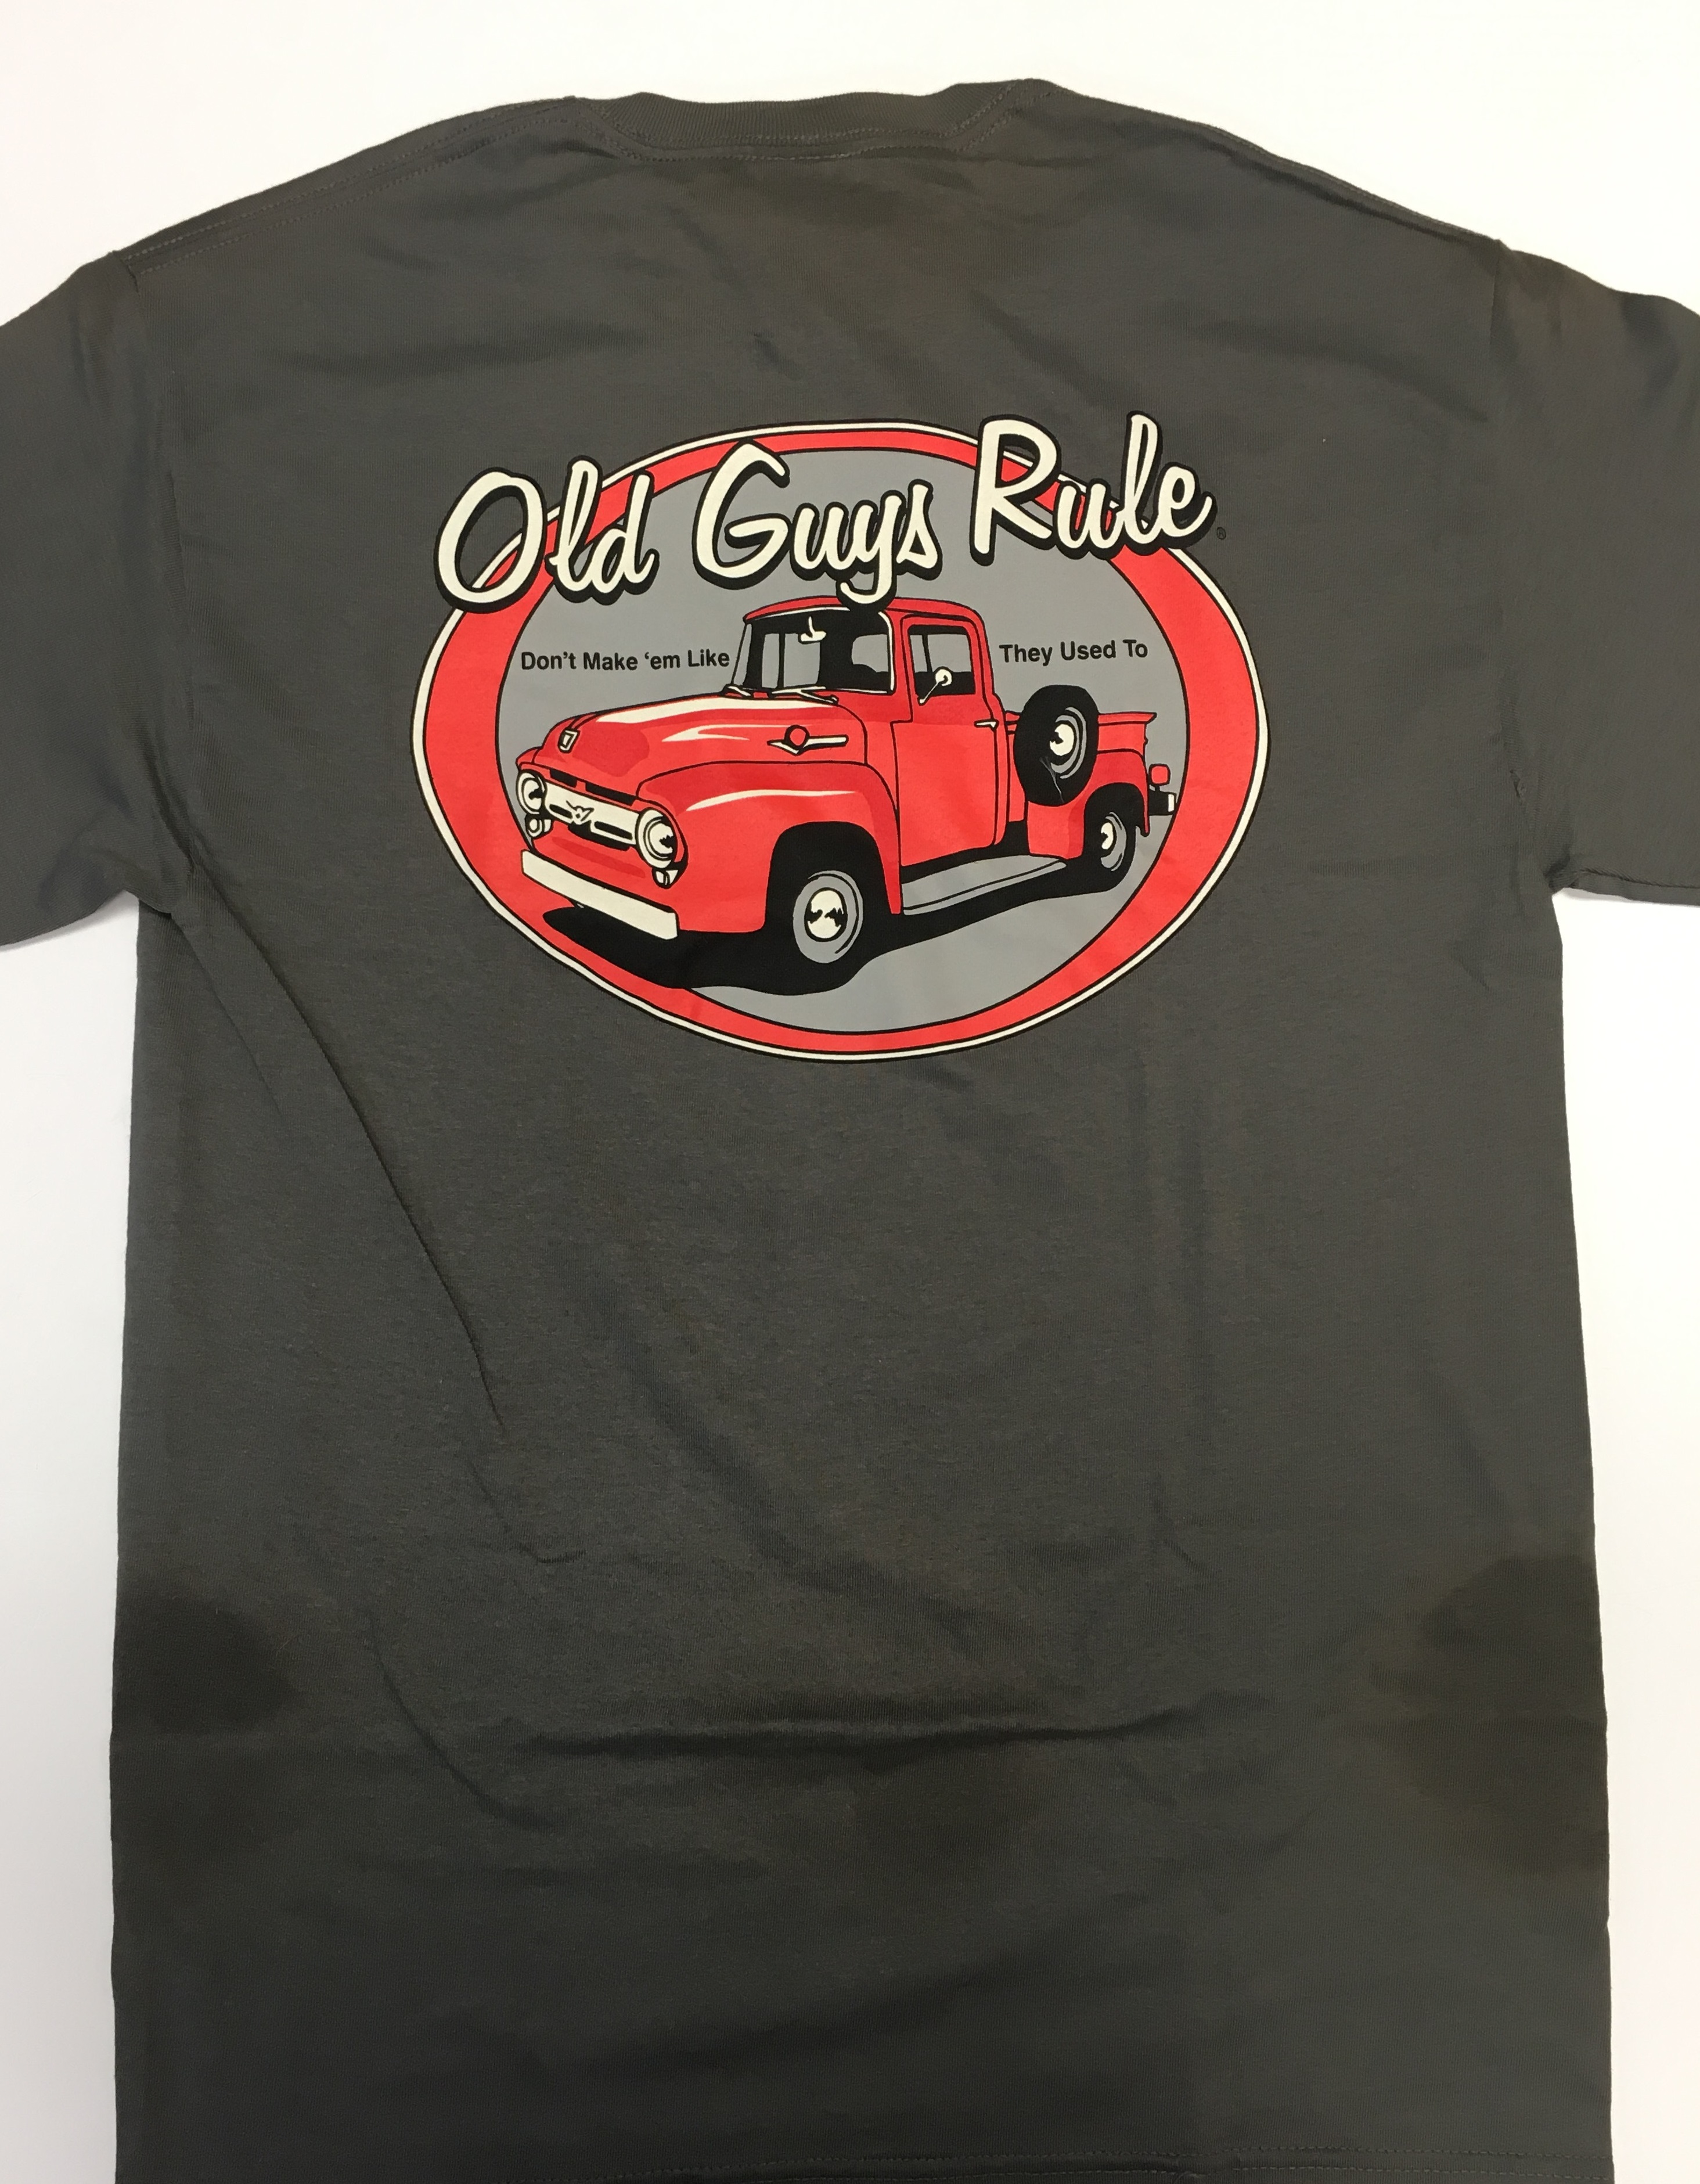 a500f34ca Old Guys Rule - Don't make em like they used to - T shirt - Charcoal ...